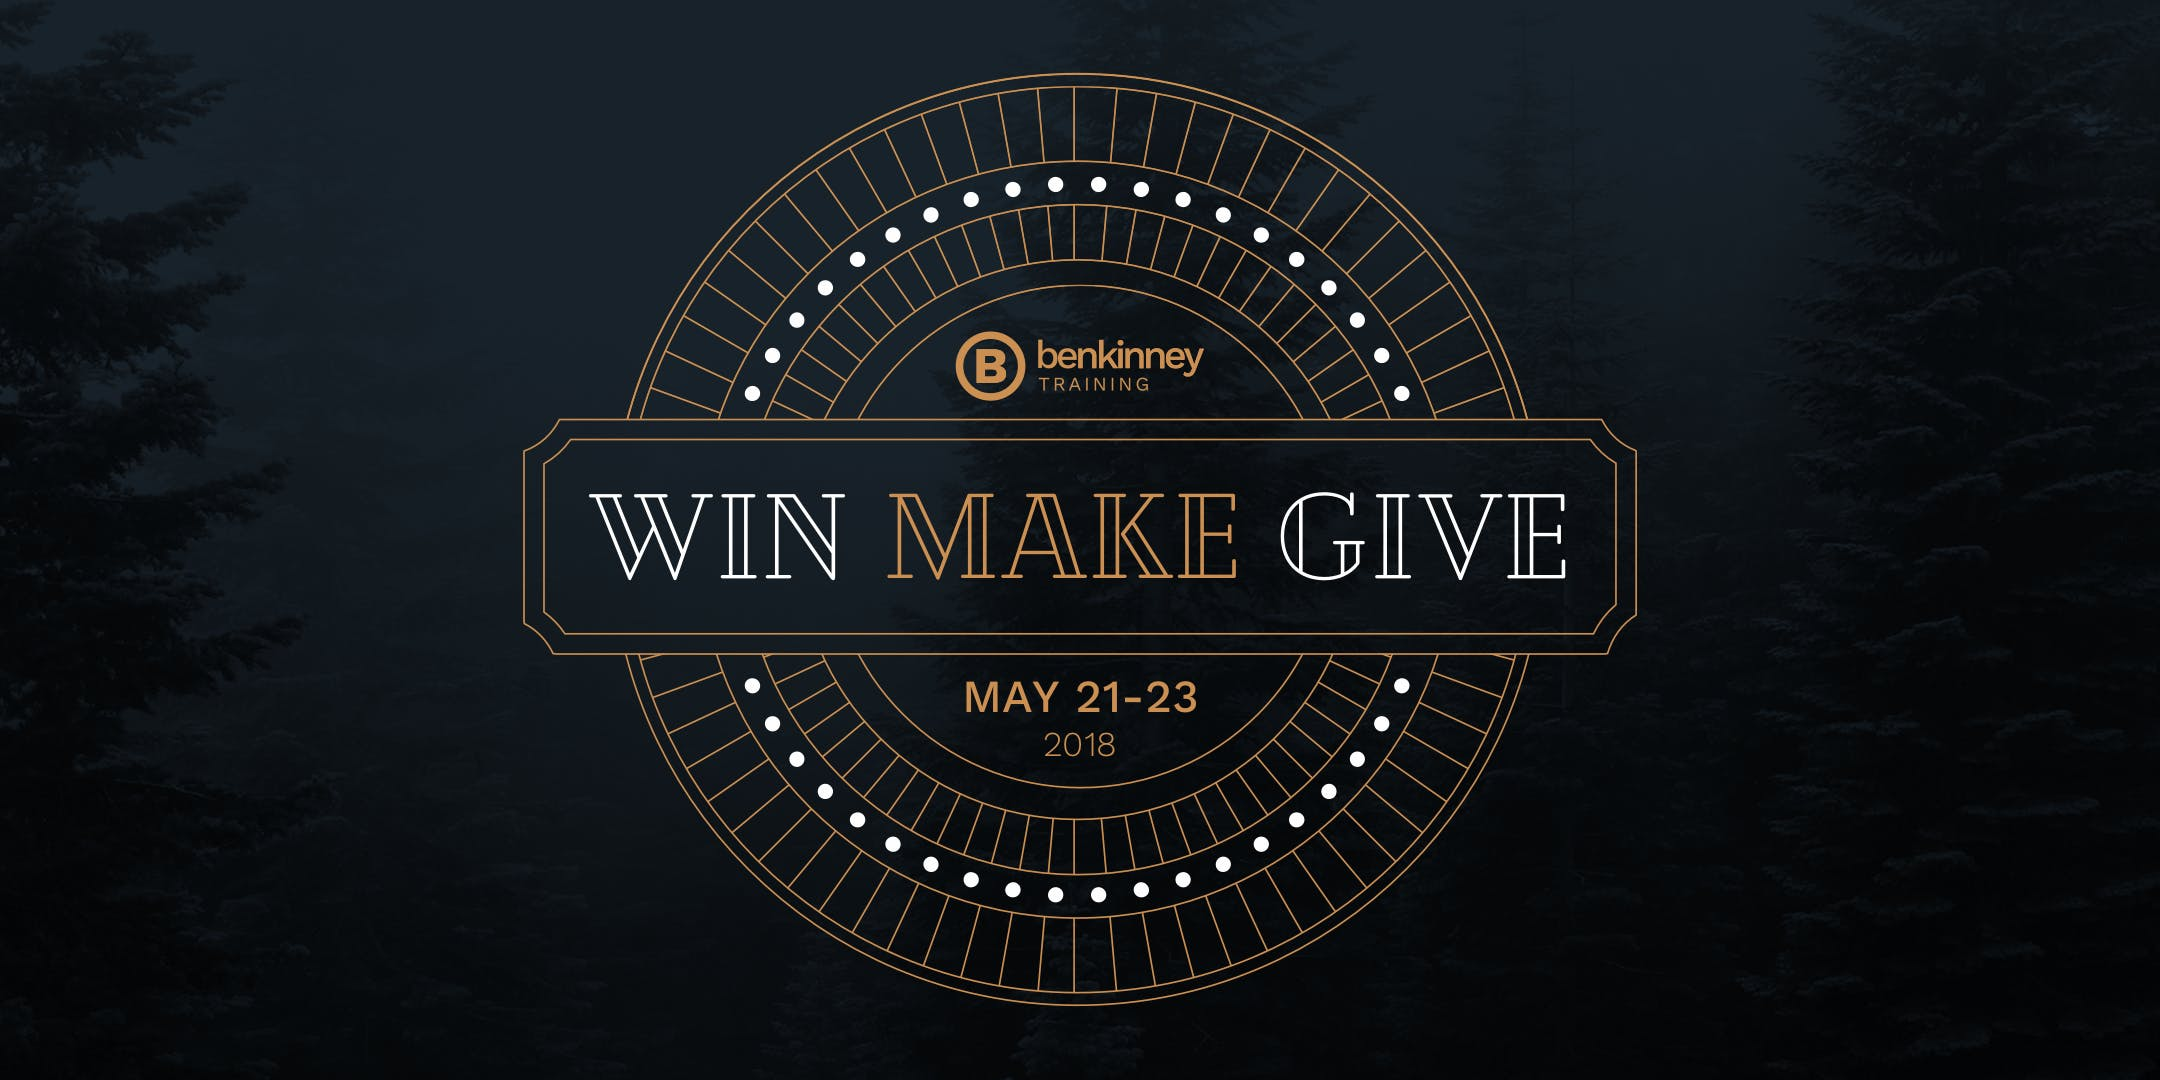 WIN MAKE GIVE - A Ben Kinney Training Event